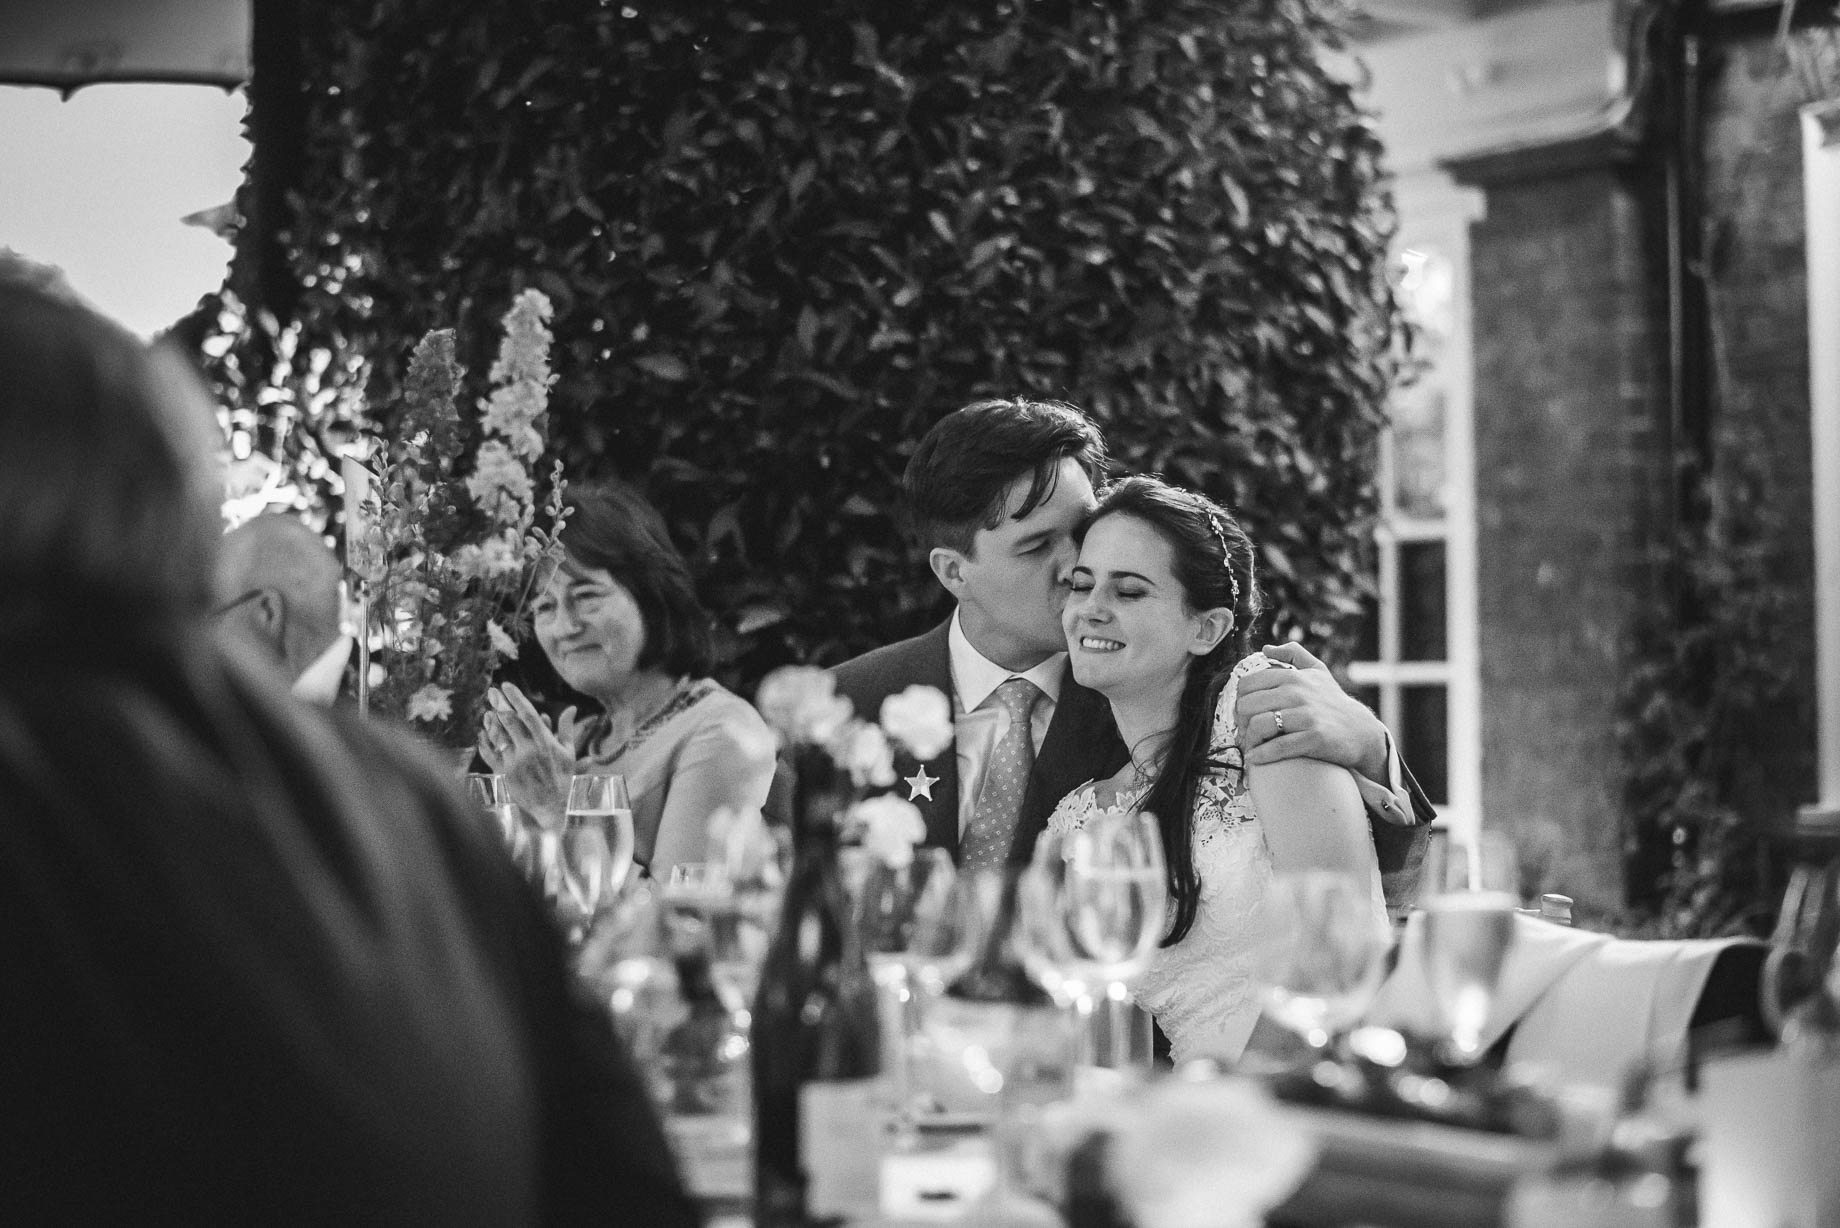 London wedding photography - Claire and JW - Guy Collier Photography (128 of 153)